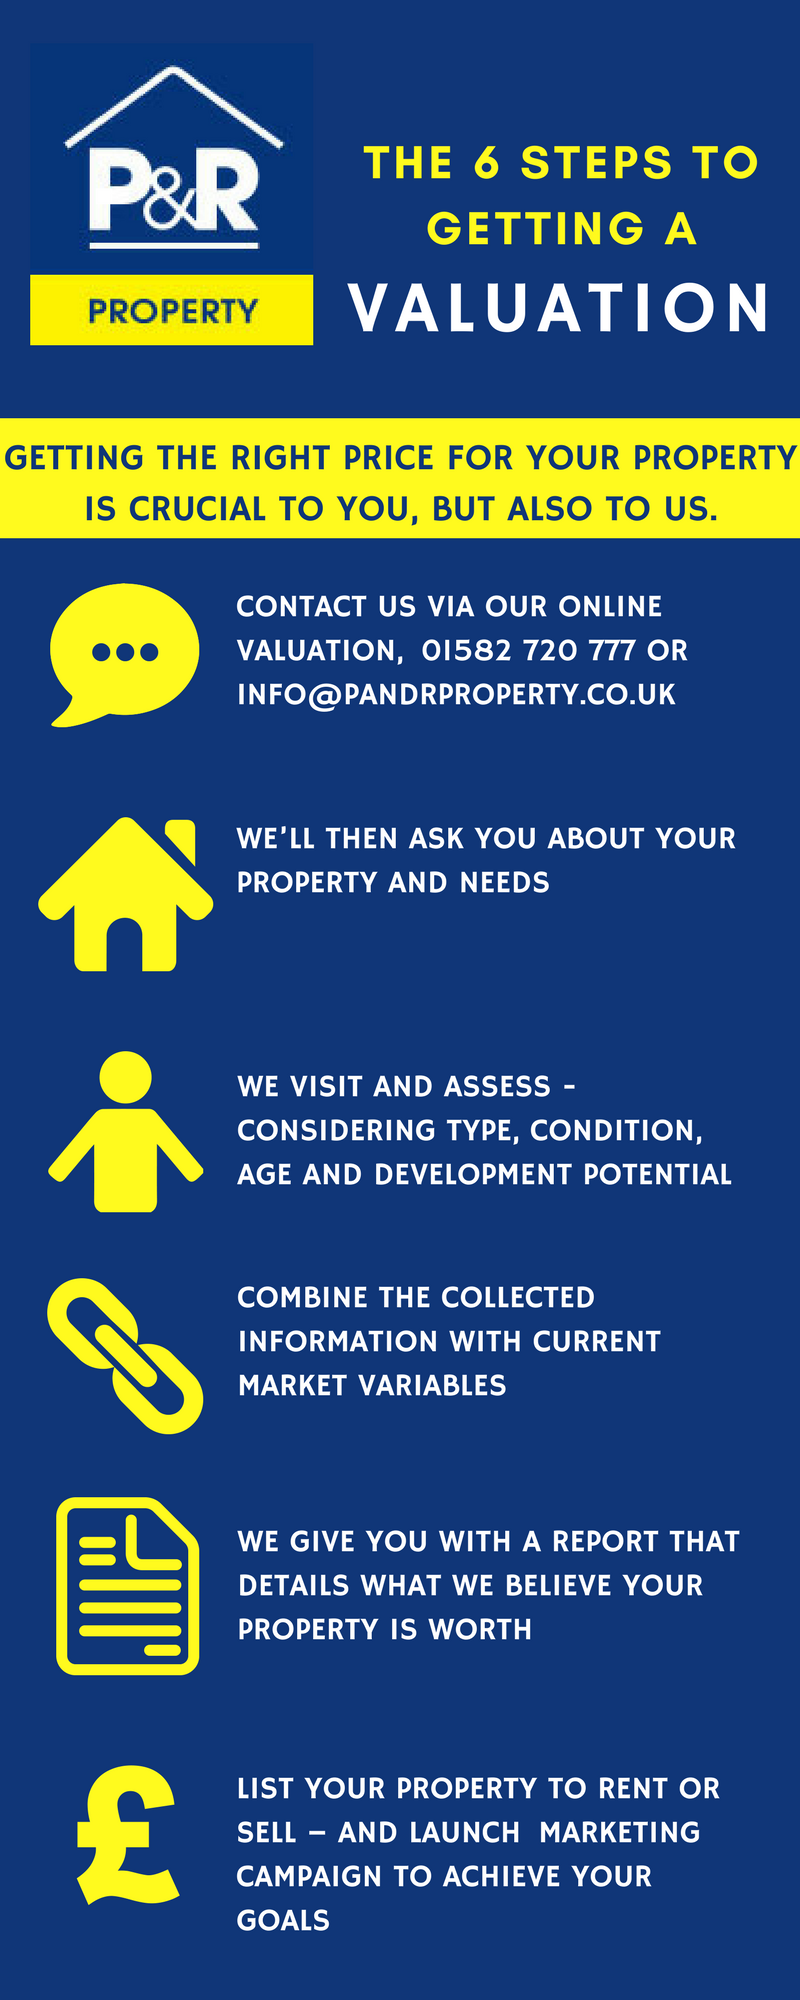 getting-valuation-infographic-plaza